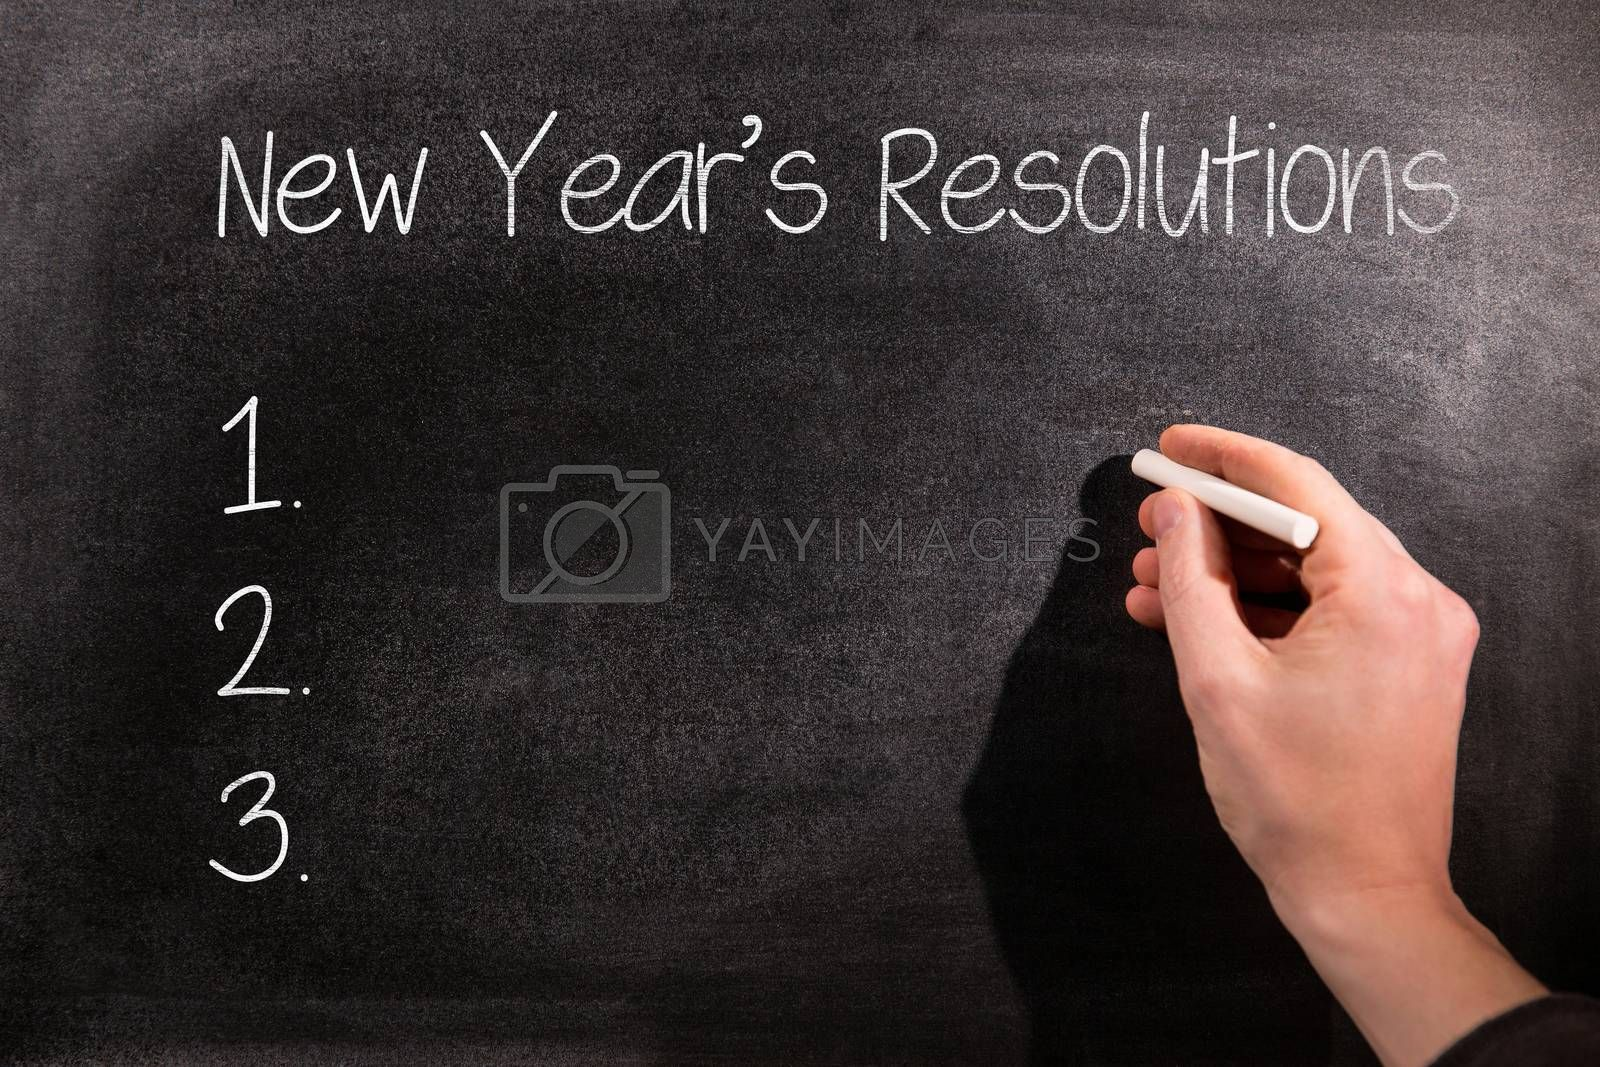 New years resolution list against man drawing on chalkboard